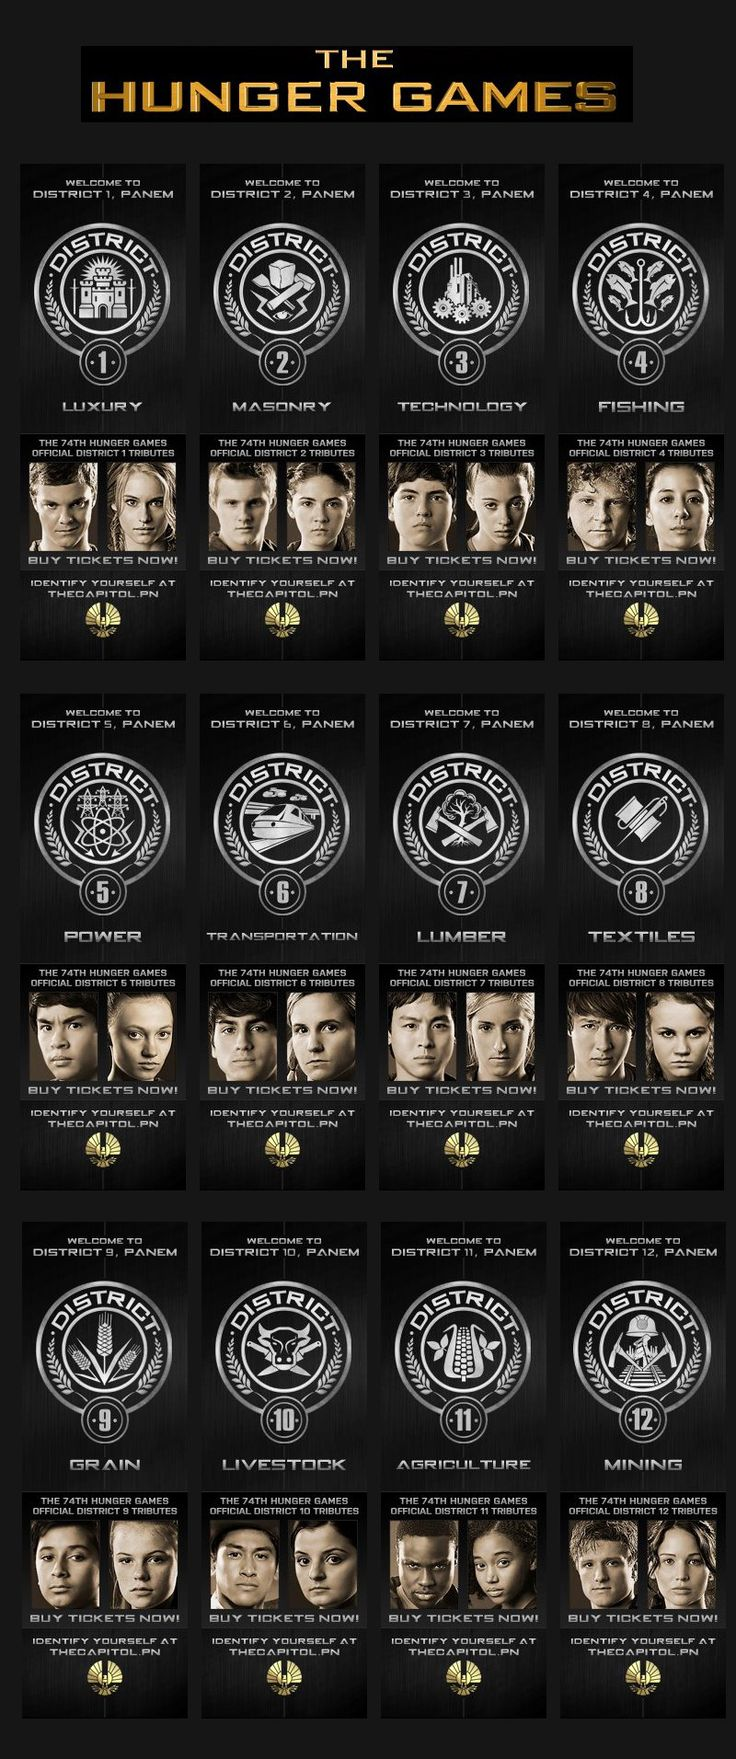 Hunger Games district medallions